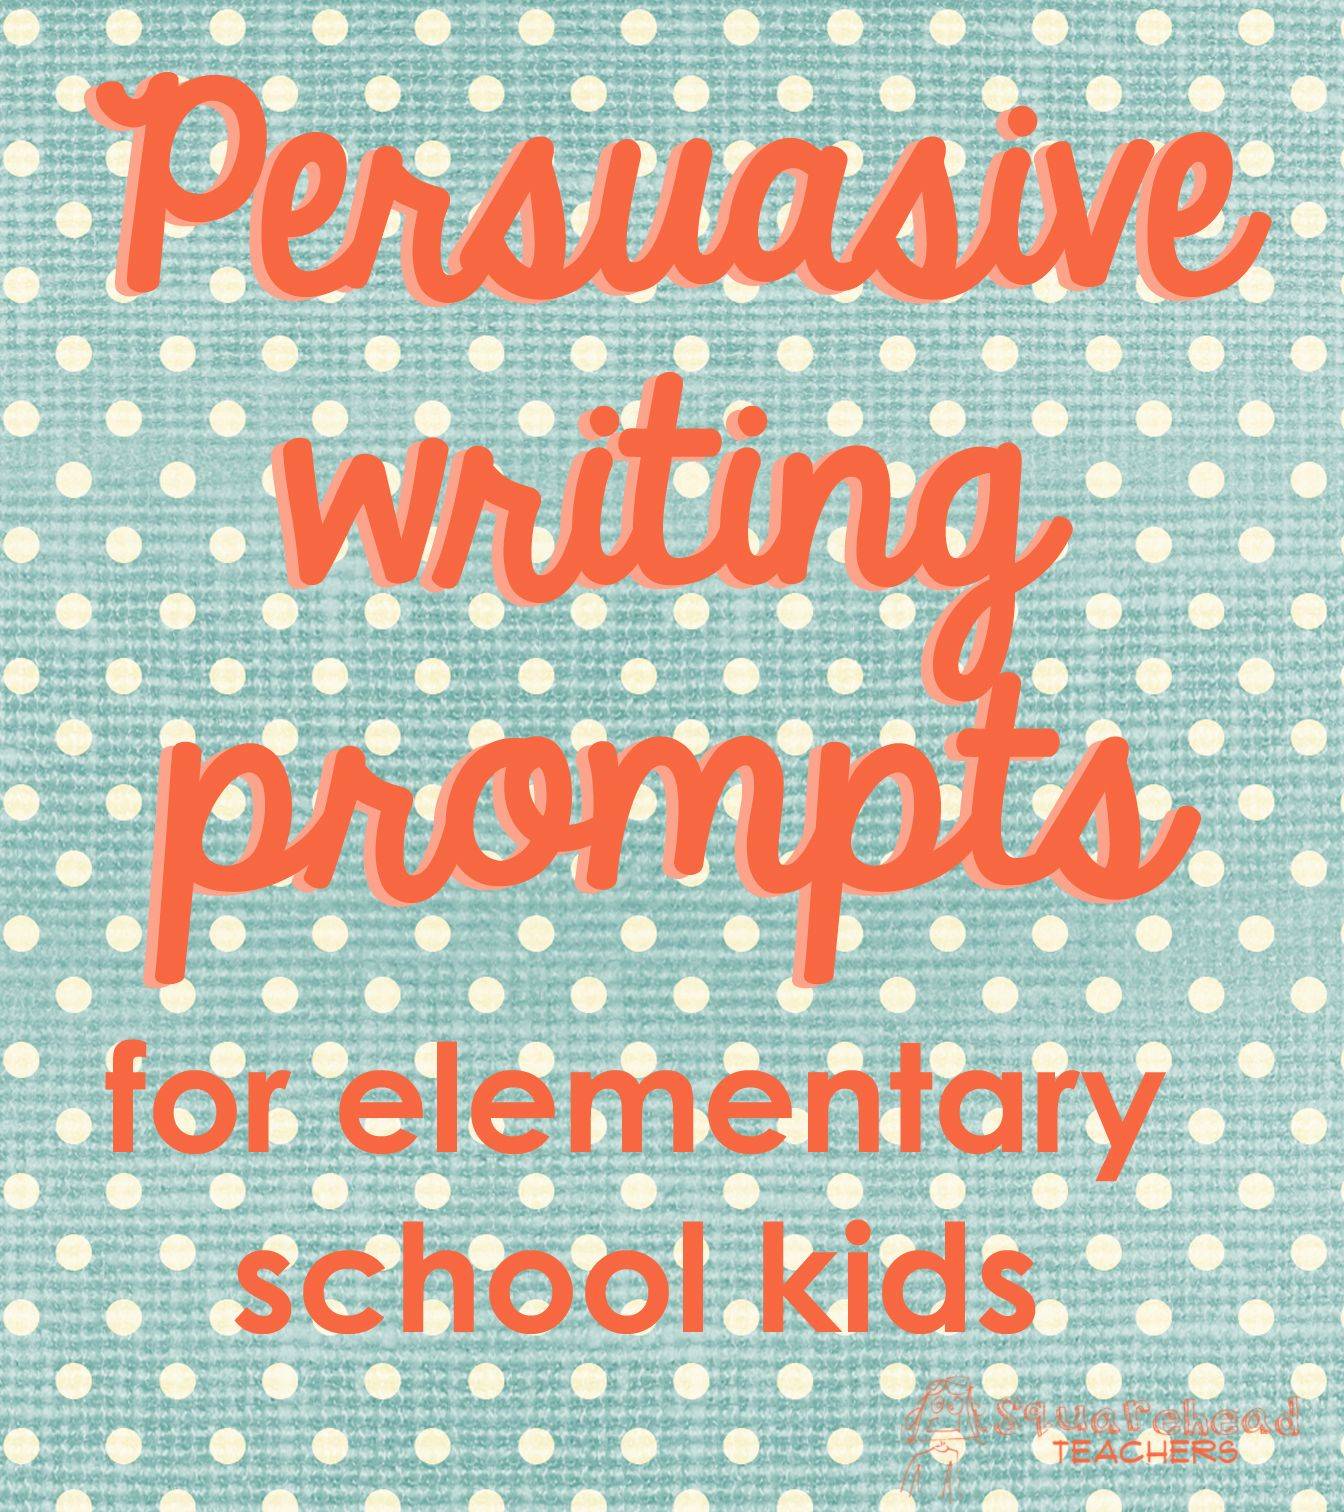 Persuasive Writing Prompts for Elementary School Kids